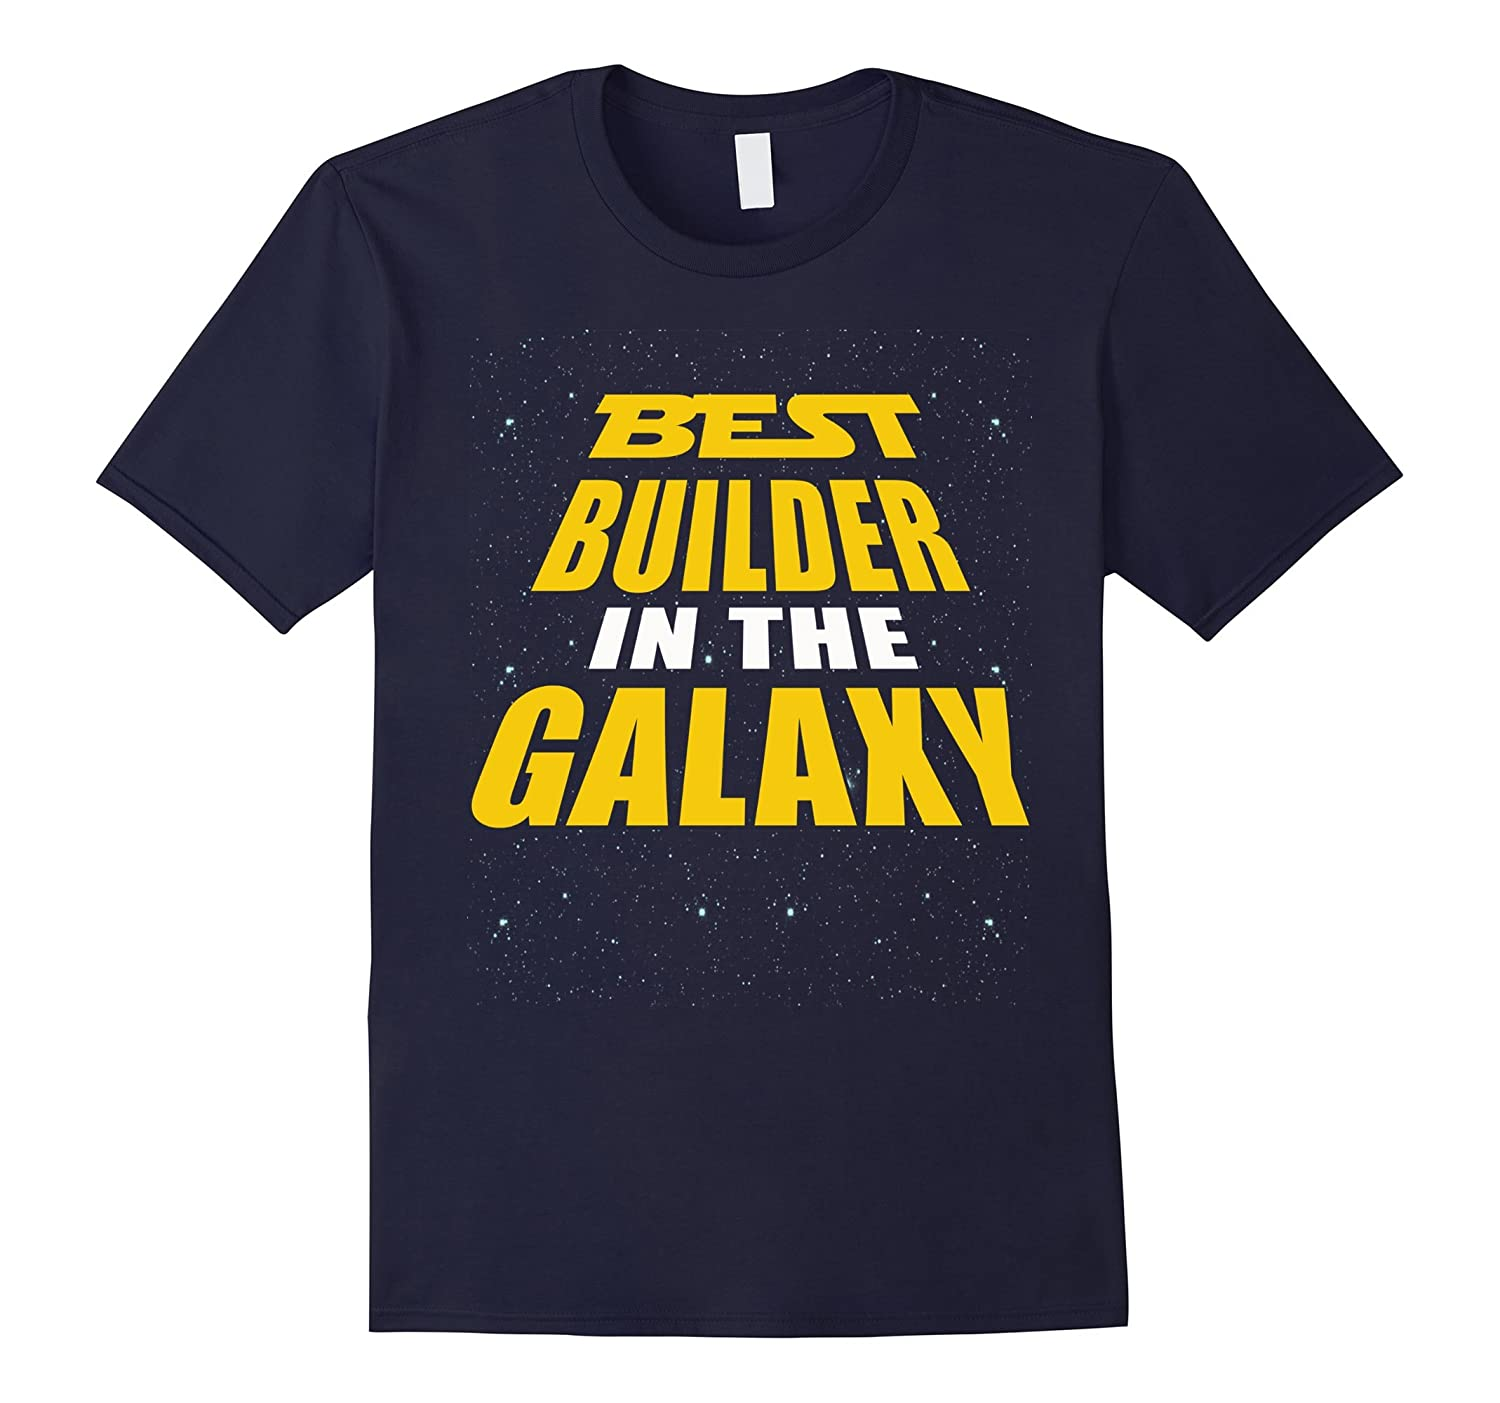 Best Builder In The Galaxy - Funny Gift Shirt For Builder-TD